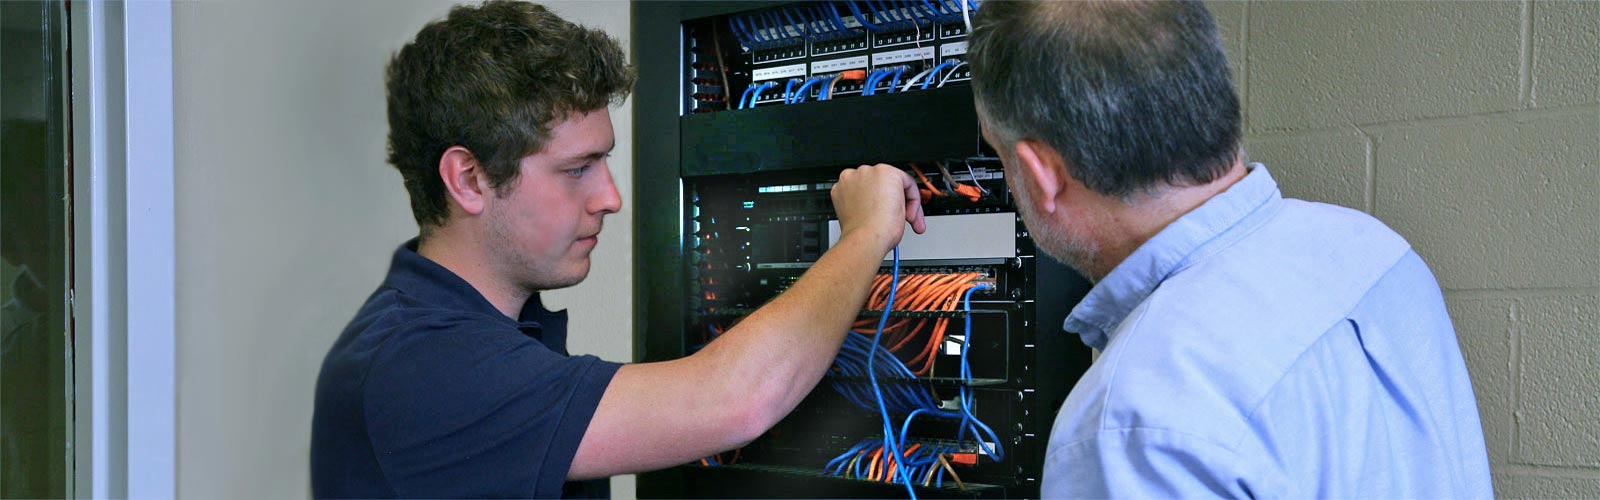 Student and Computer Instructor at network rack in training lab.